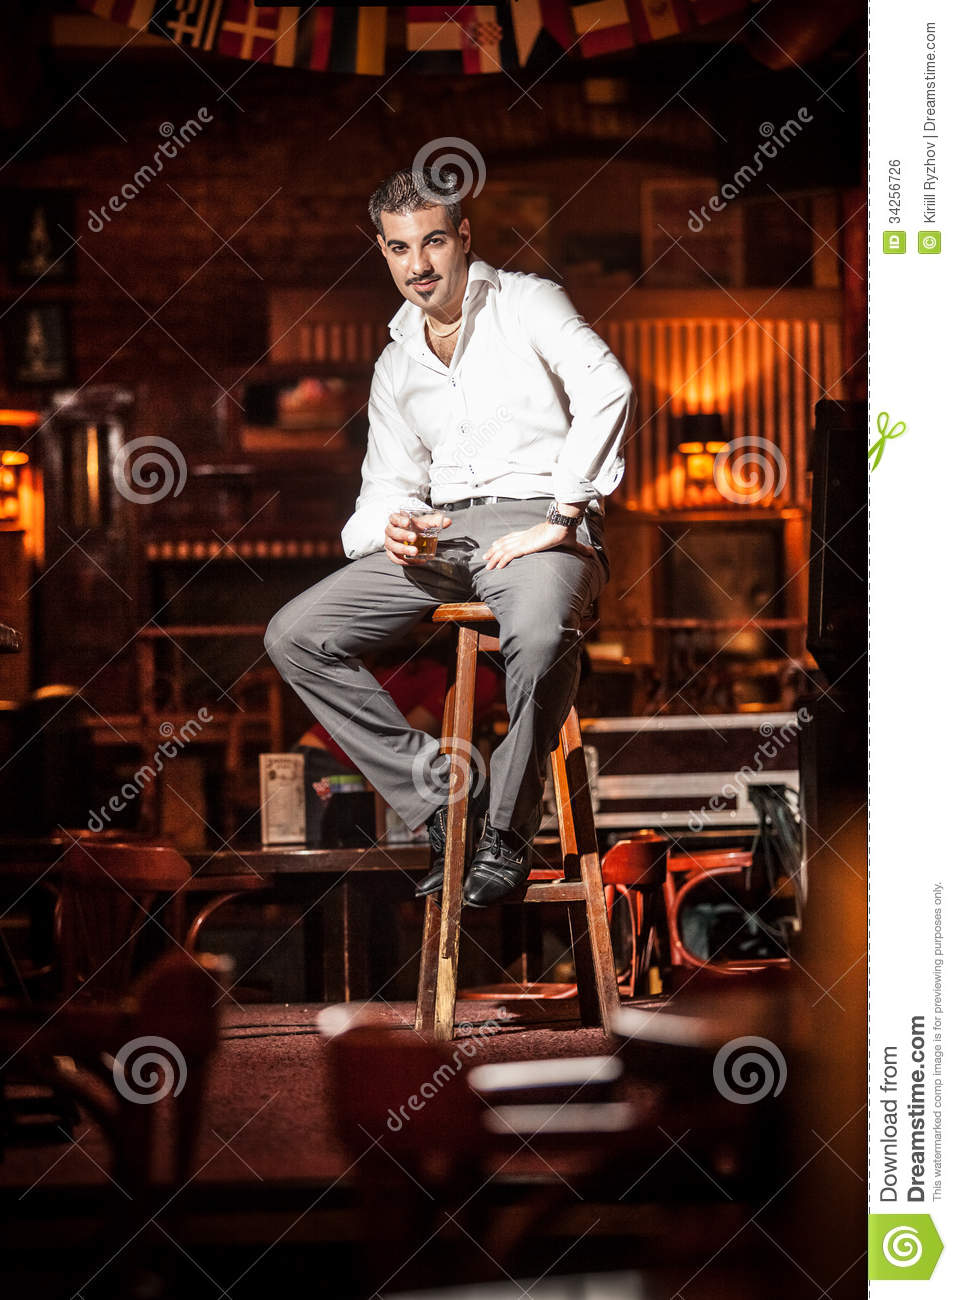 Handsome Man Sitting On Chair On Stage Royalty Free Stock